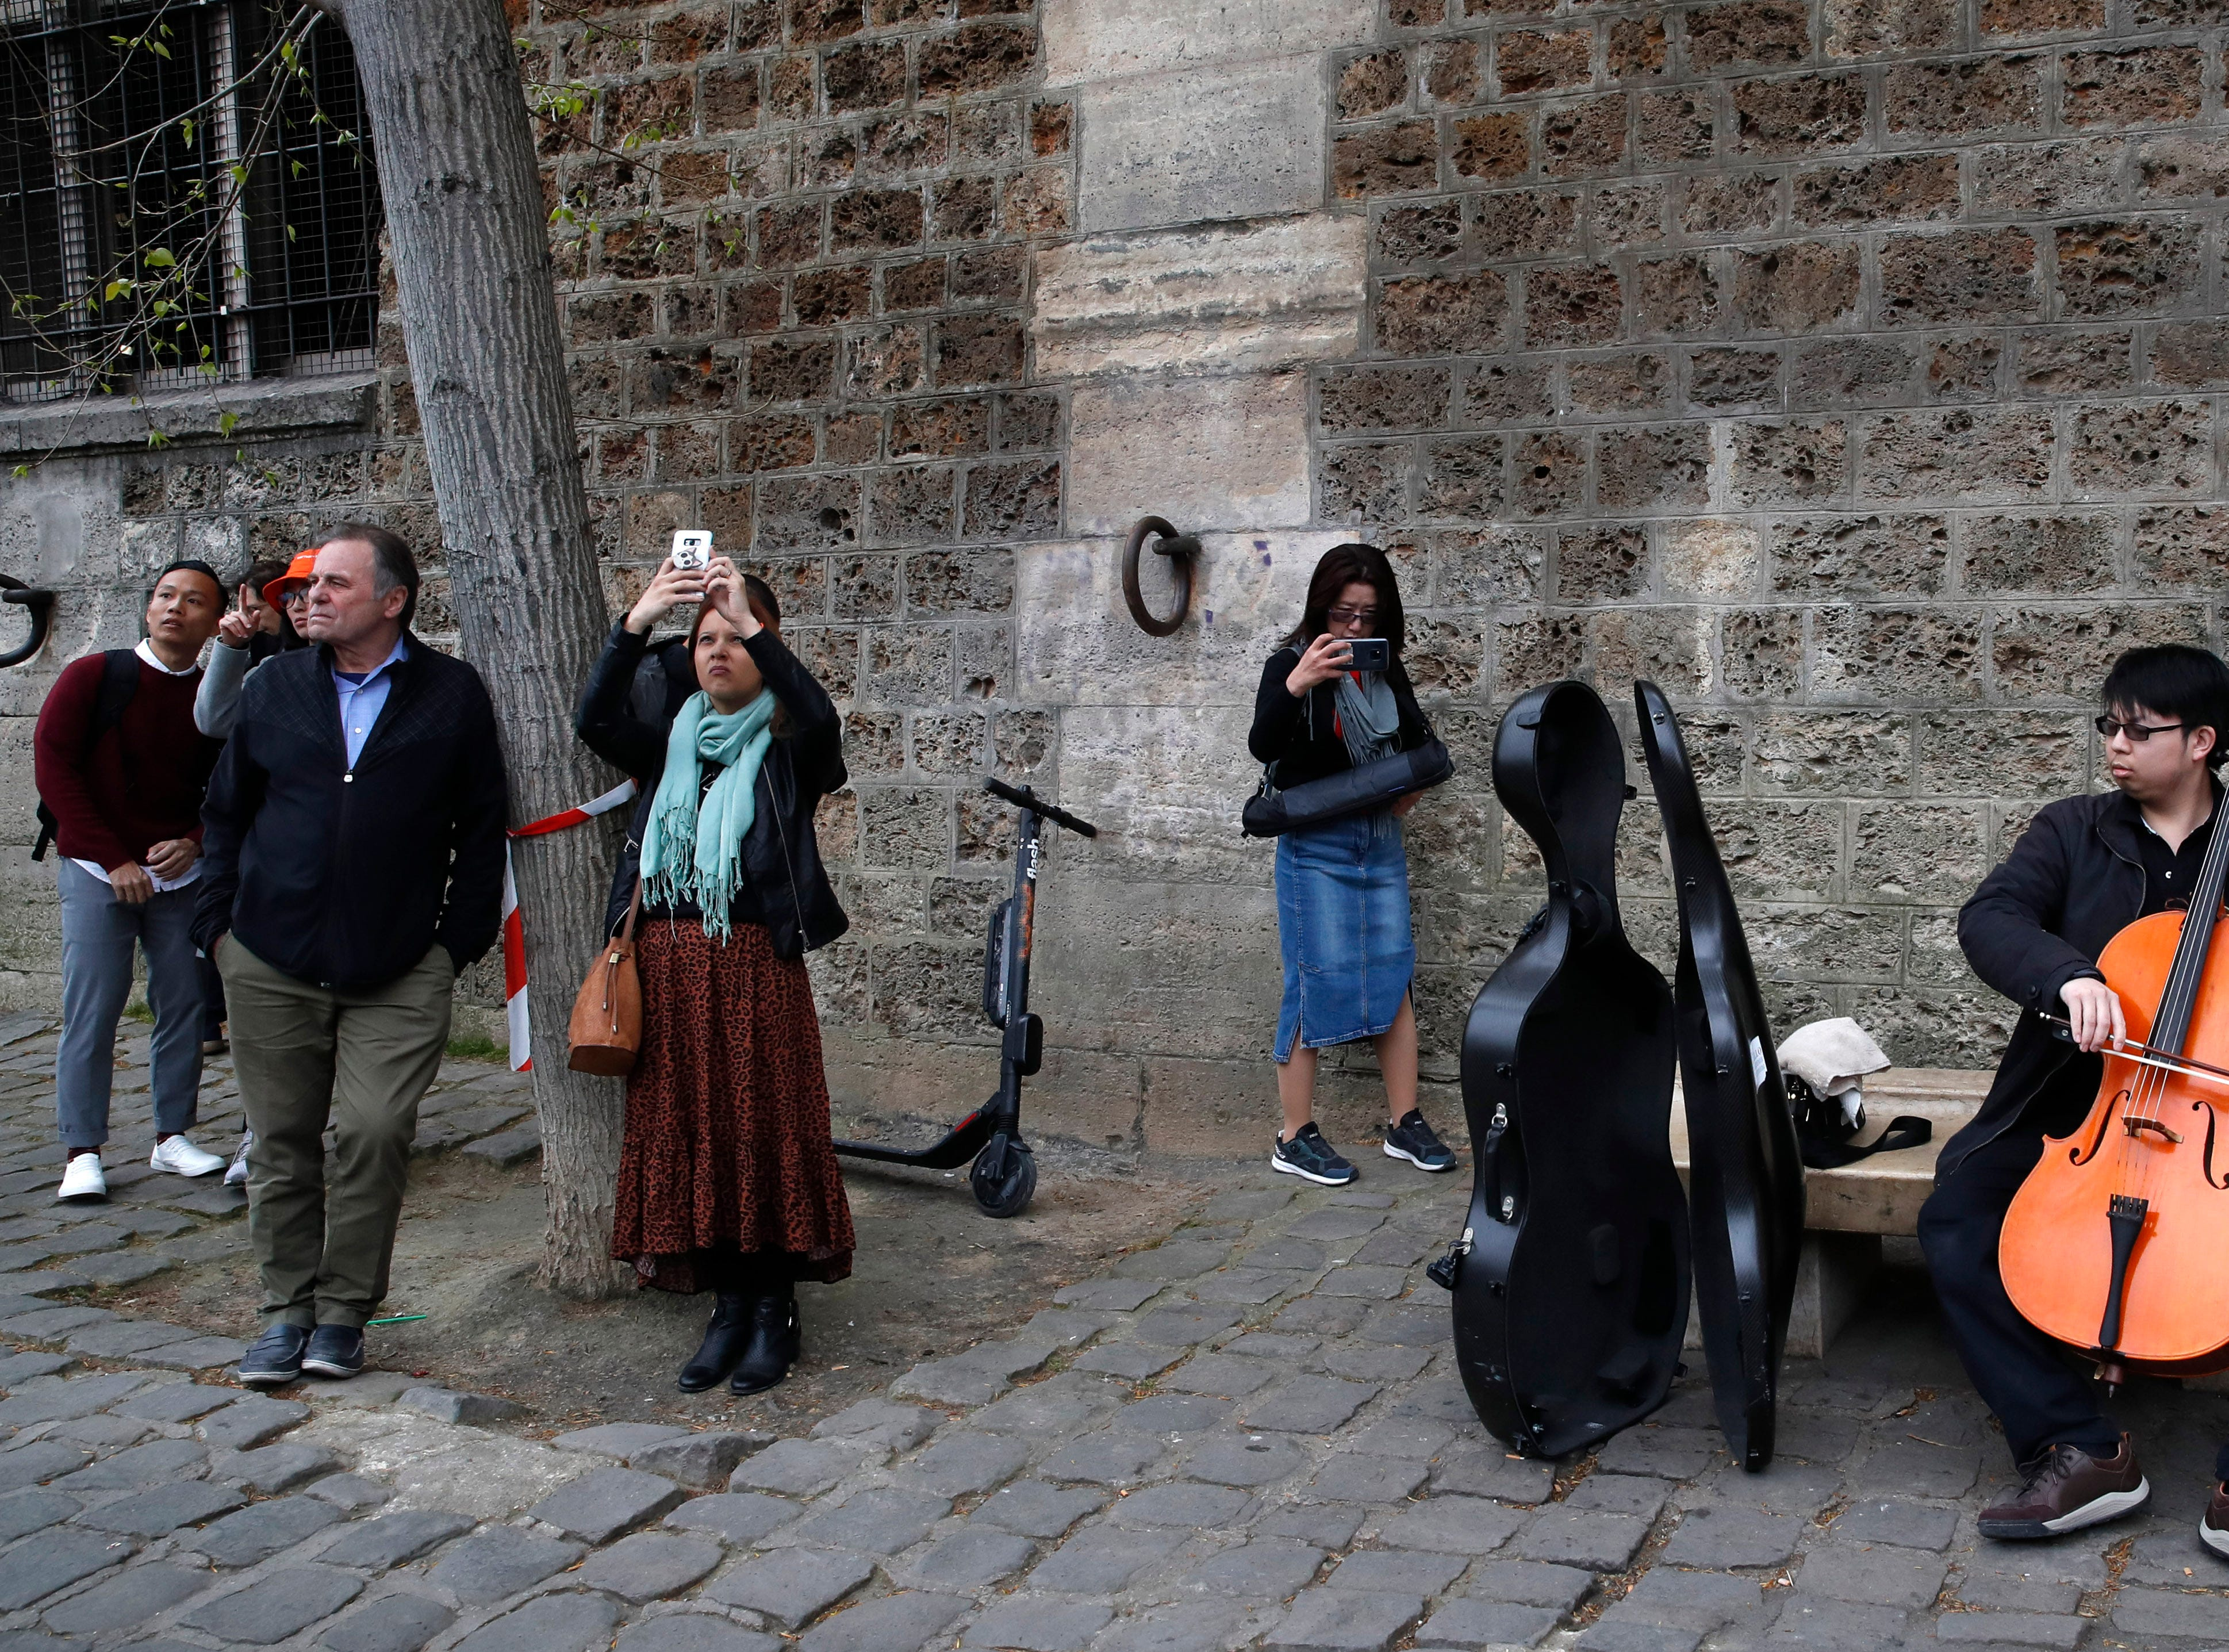 Man plays violoncello as people came to watch and photograph the Notre Dame cathedral after the fire in Paris, Tuesday, April 16, 2019. Experts are assessing the blackened shell of Paris' iconic Notre Dame cathedral to establish next steps to save what remains after a devastating fire destroyed much of the almost 900-year-old building. With the fire that broke out Monday evening and quickly consumed the cathedral now under control, attention is turning to ensuring the structural integrity of the remaining building. (AP Photo/Christophe Ena)